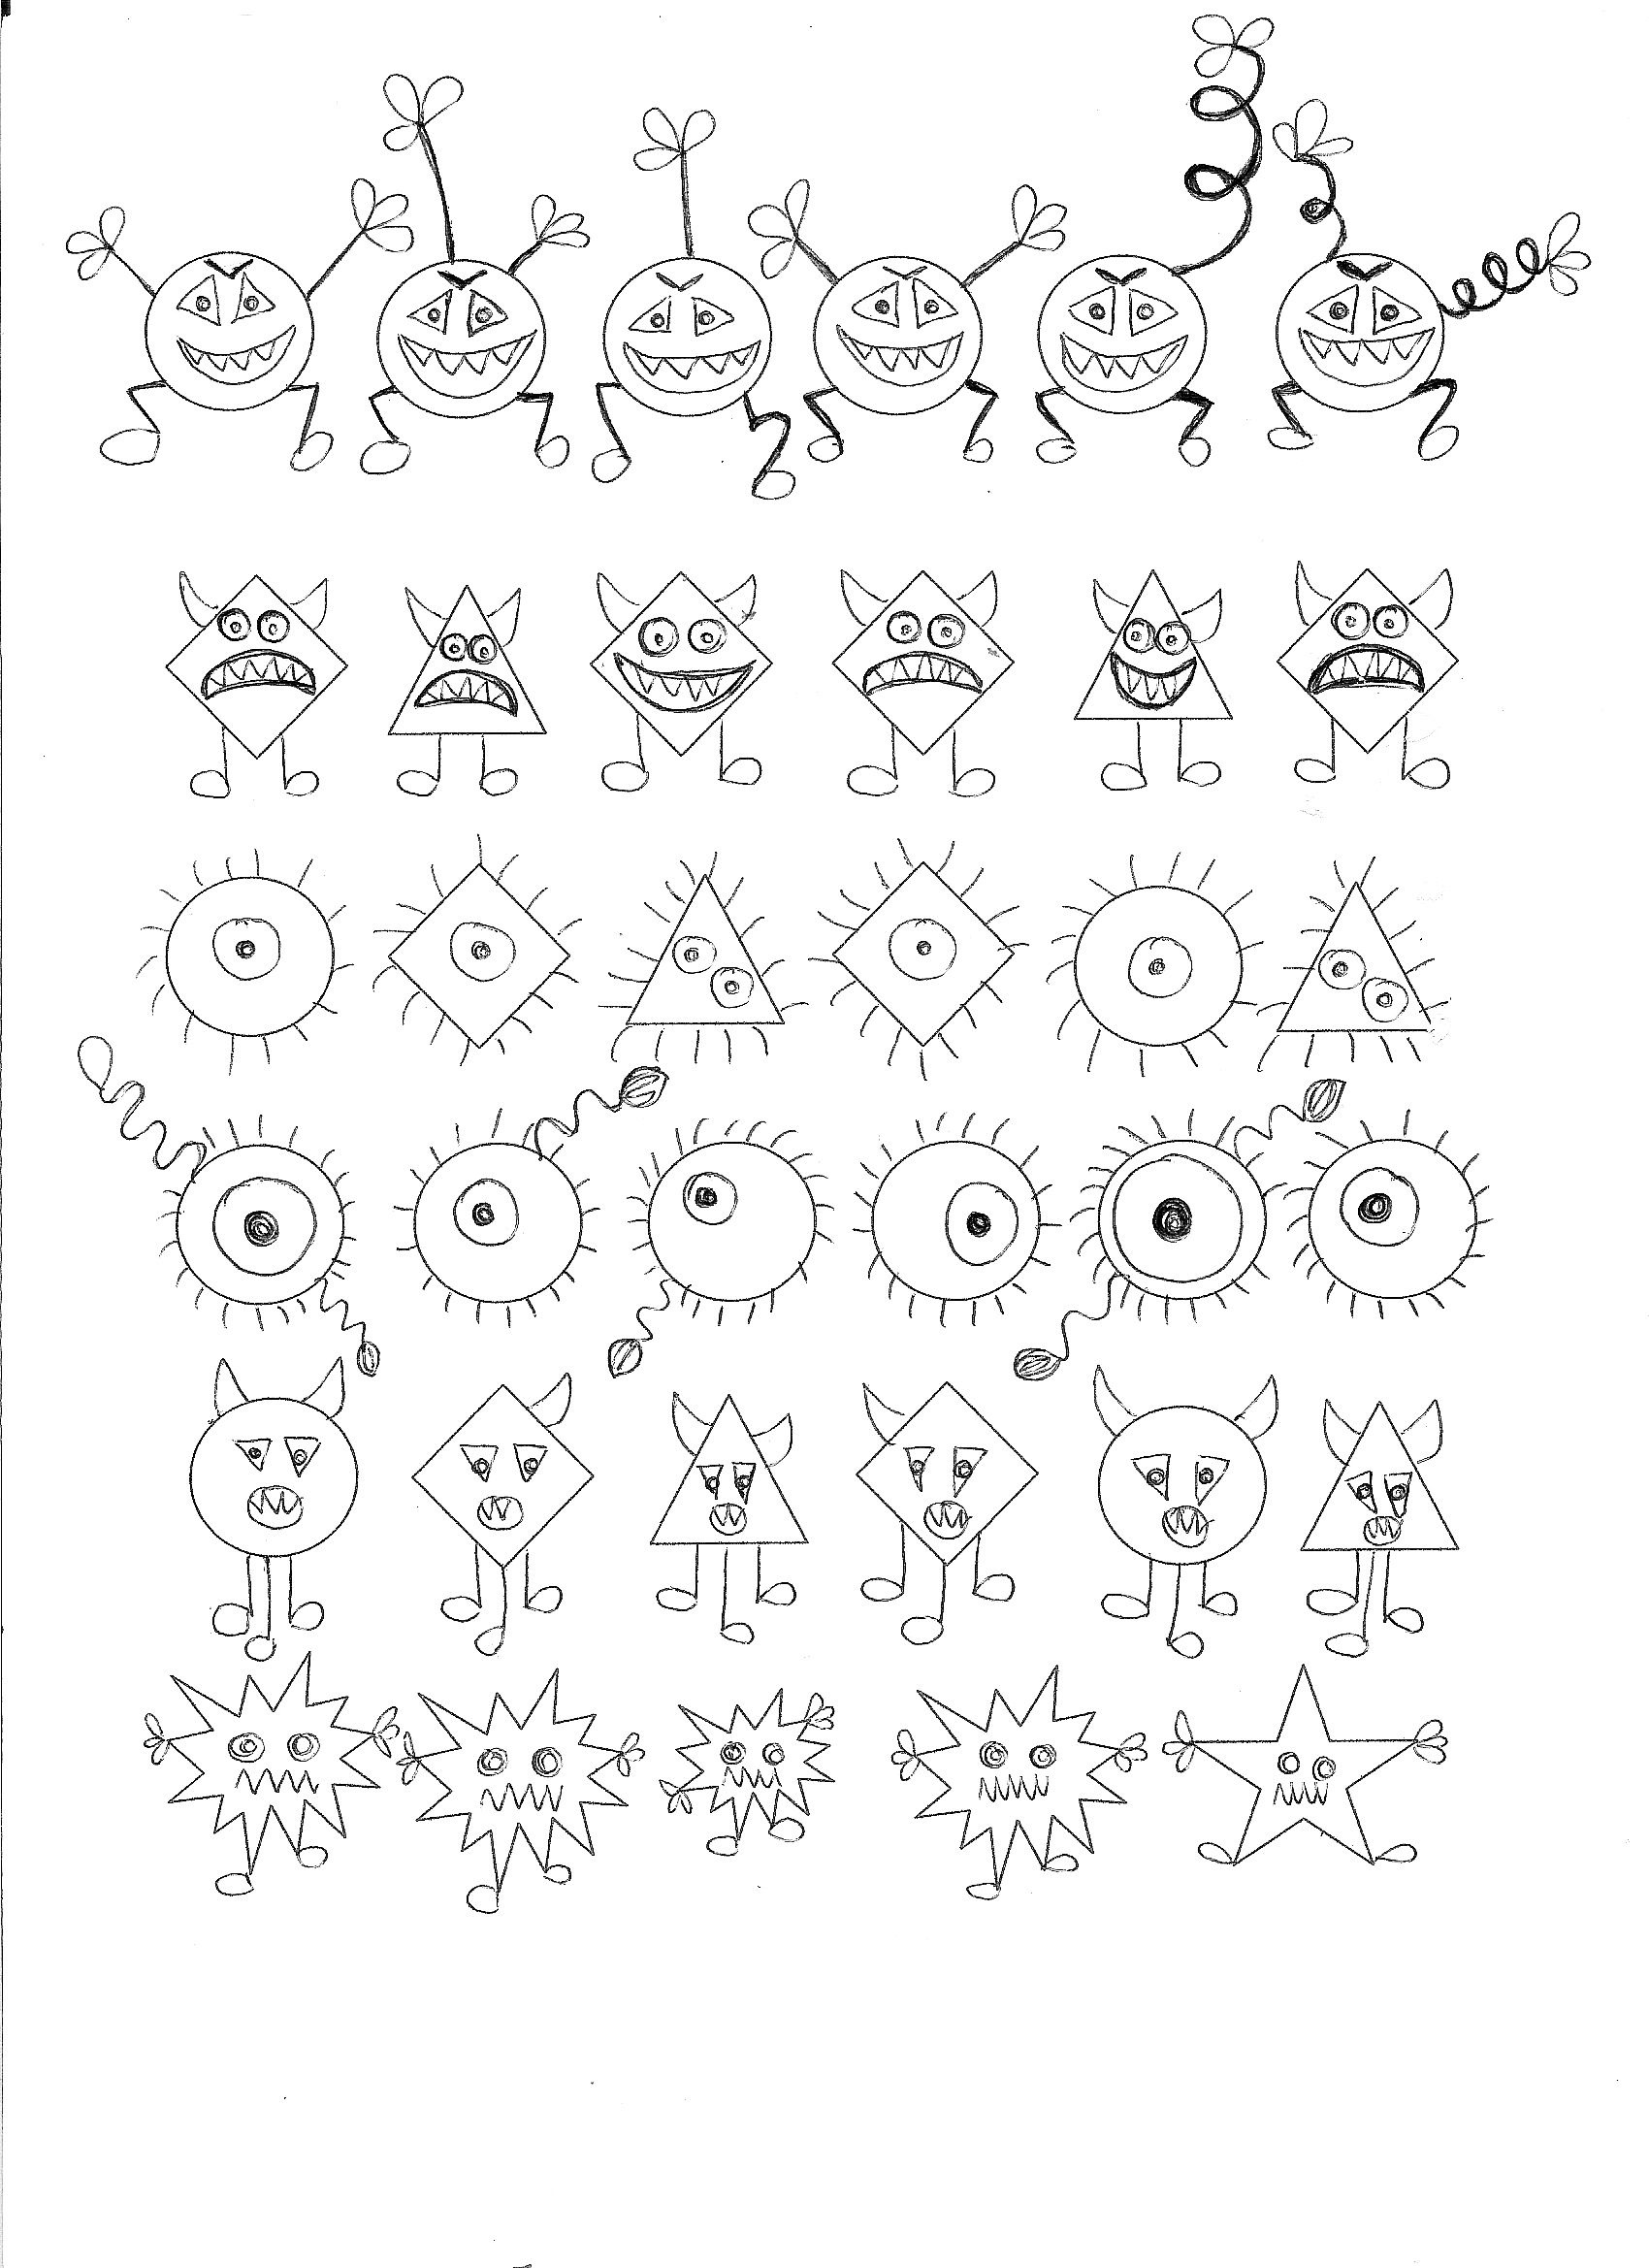 Germ Theme Math Activity Find The Germ That Doesn T Belong To The Row 6 7 Years Kindergarten Worksheets Printable Kindergarten Worksheets Math Activities [ 2338 x 1700 Pixel ]